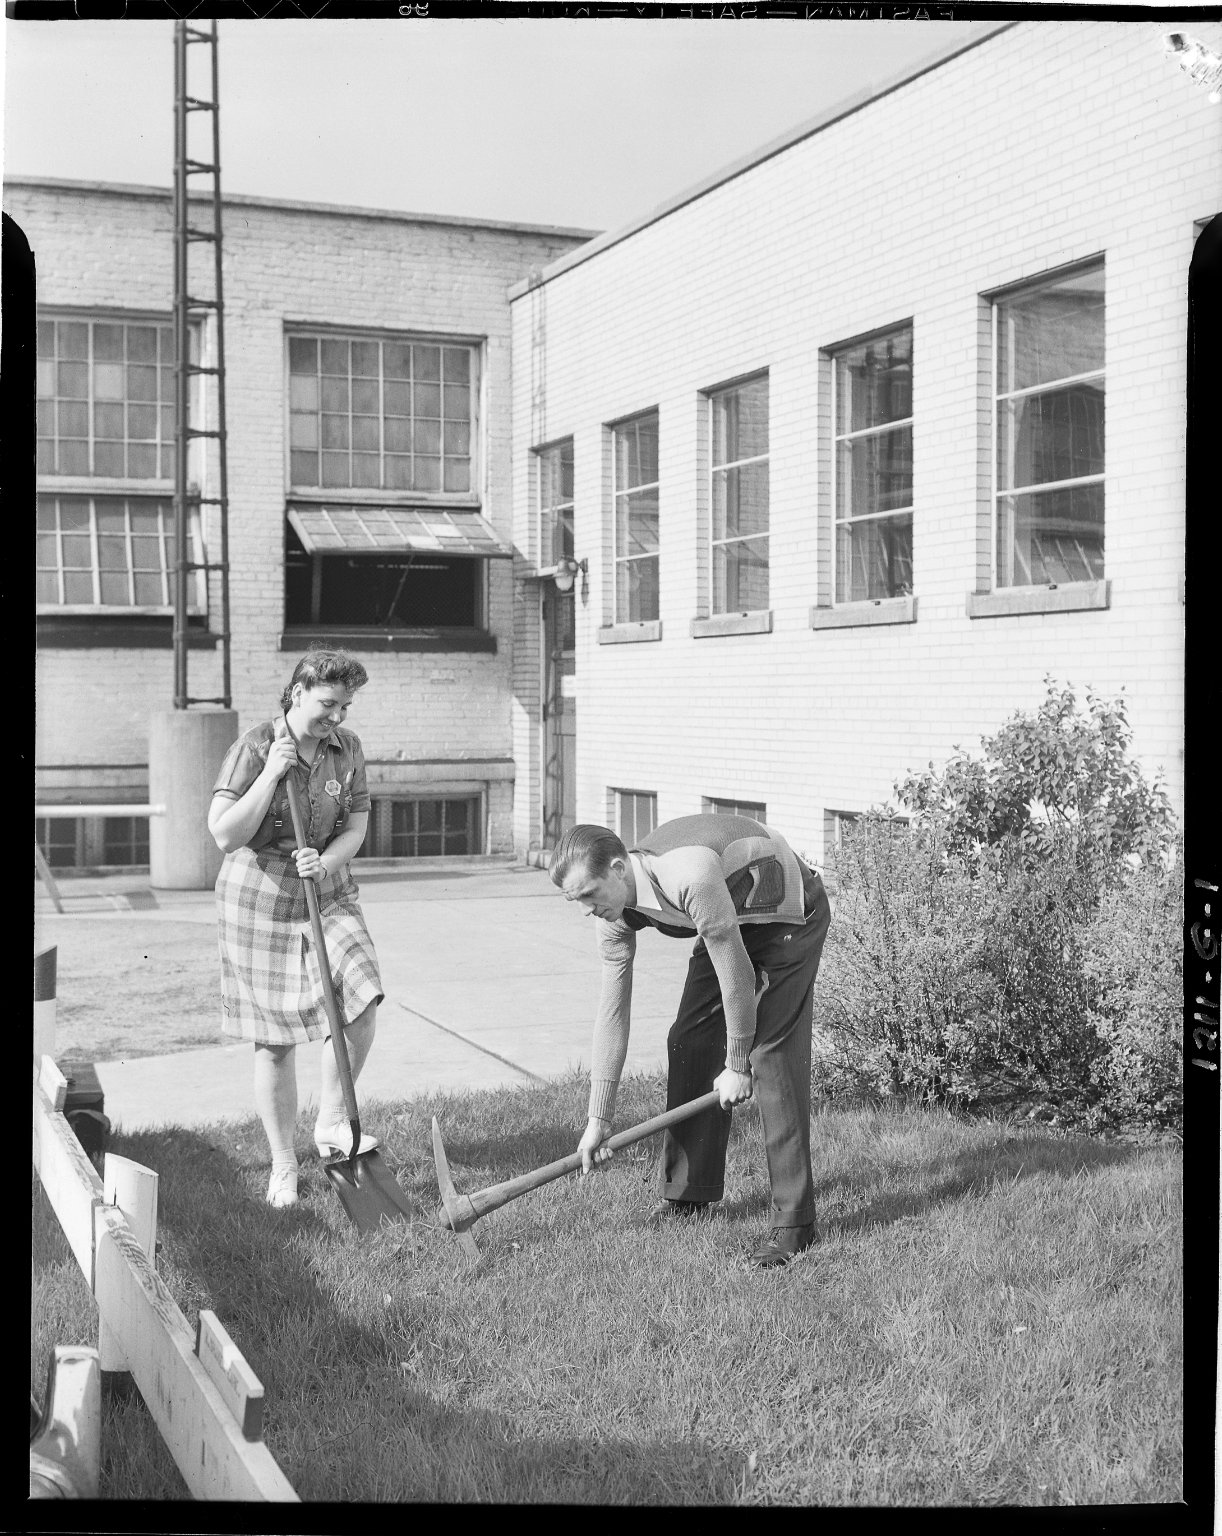 Two people digging in lawn to create a hole for flag pole